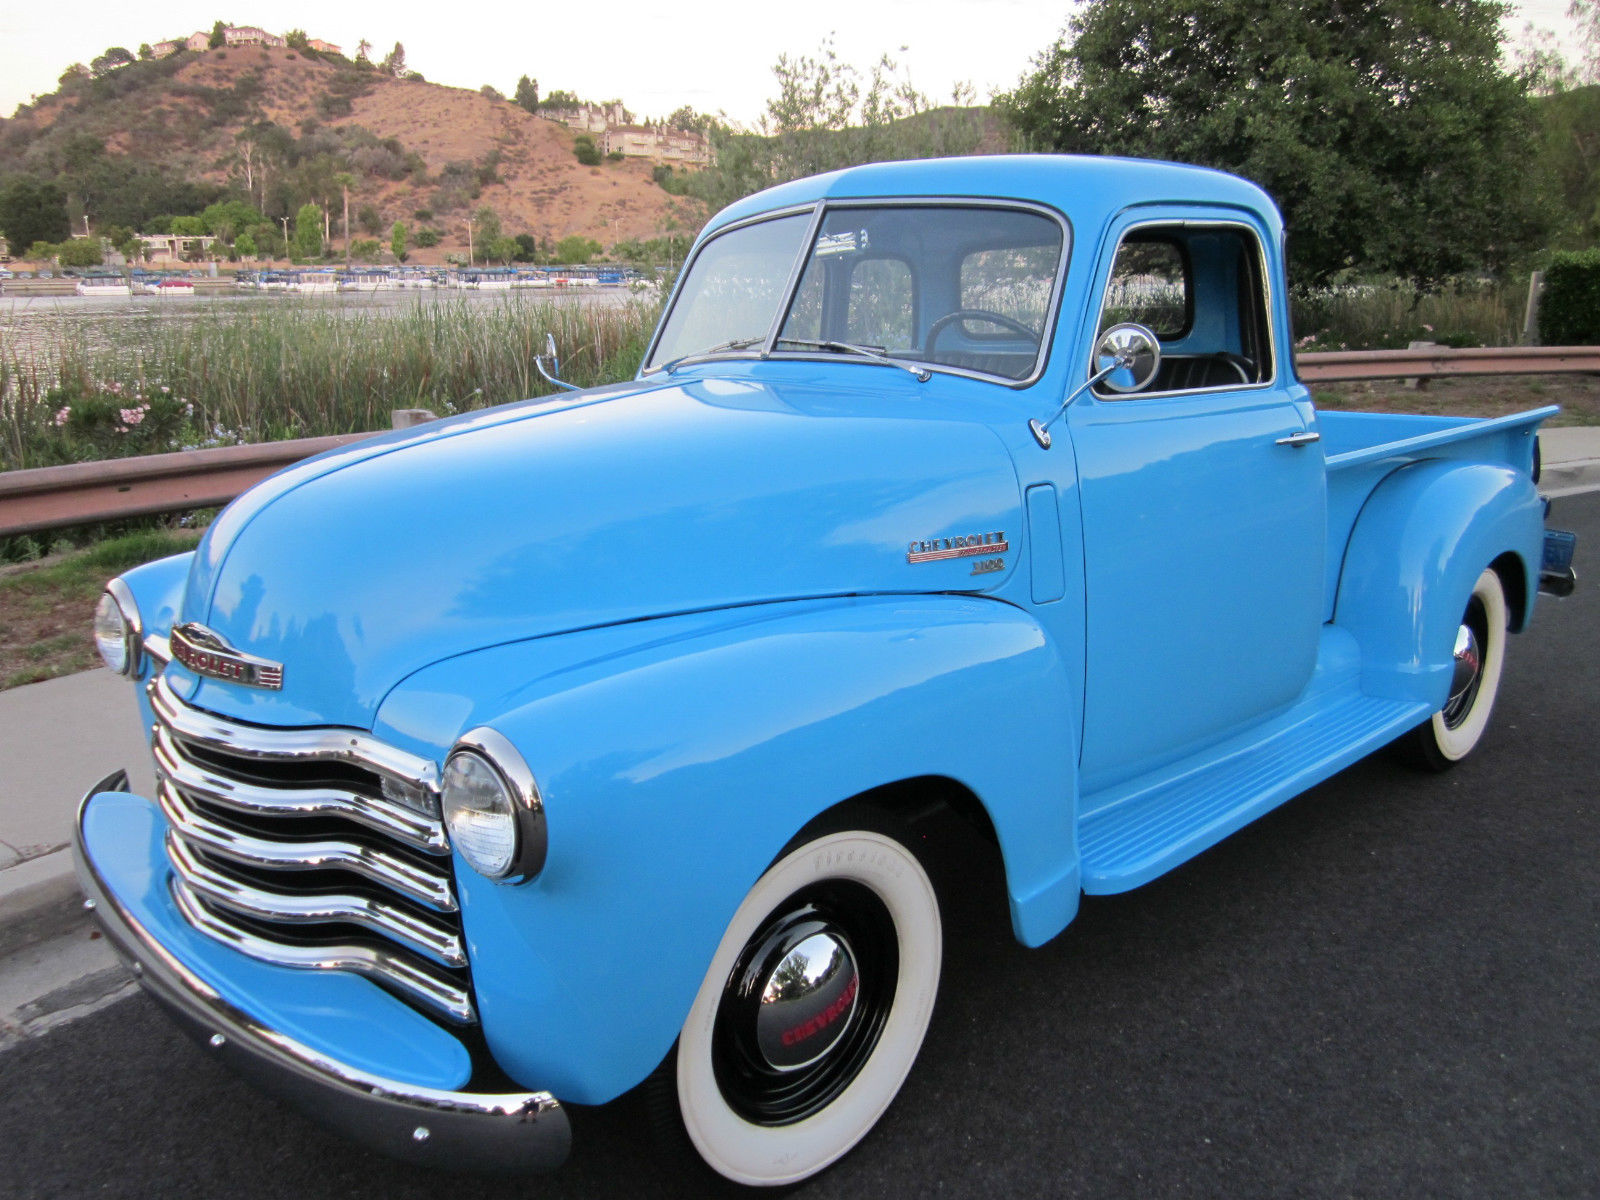 1949 Chevrolet 3100 Deluxe - Project Cars For Sale